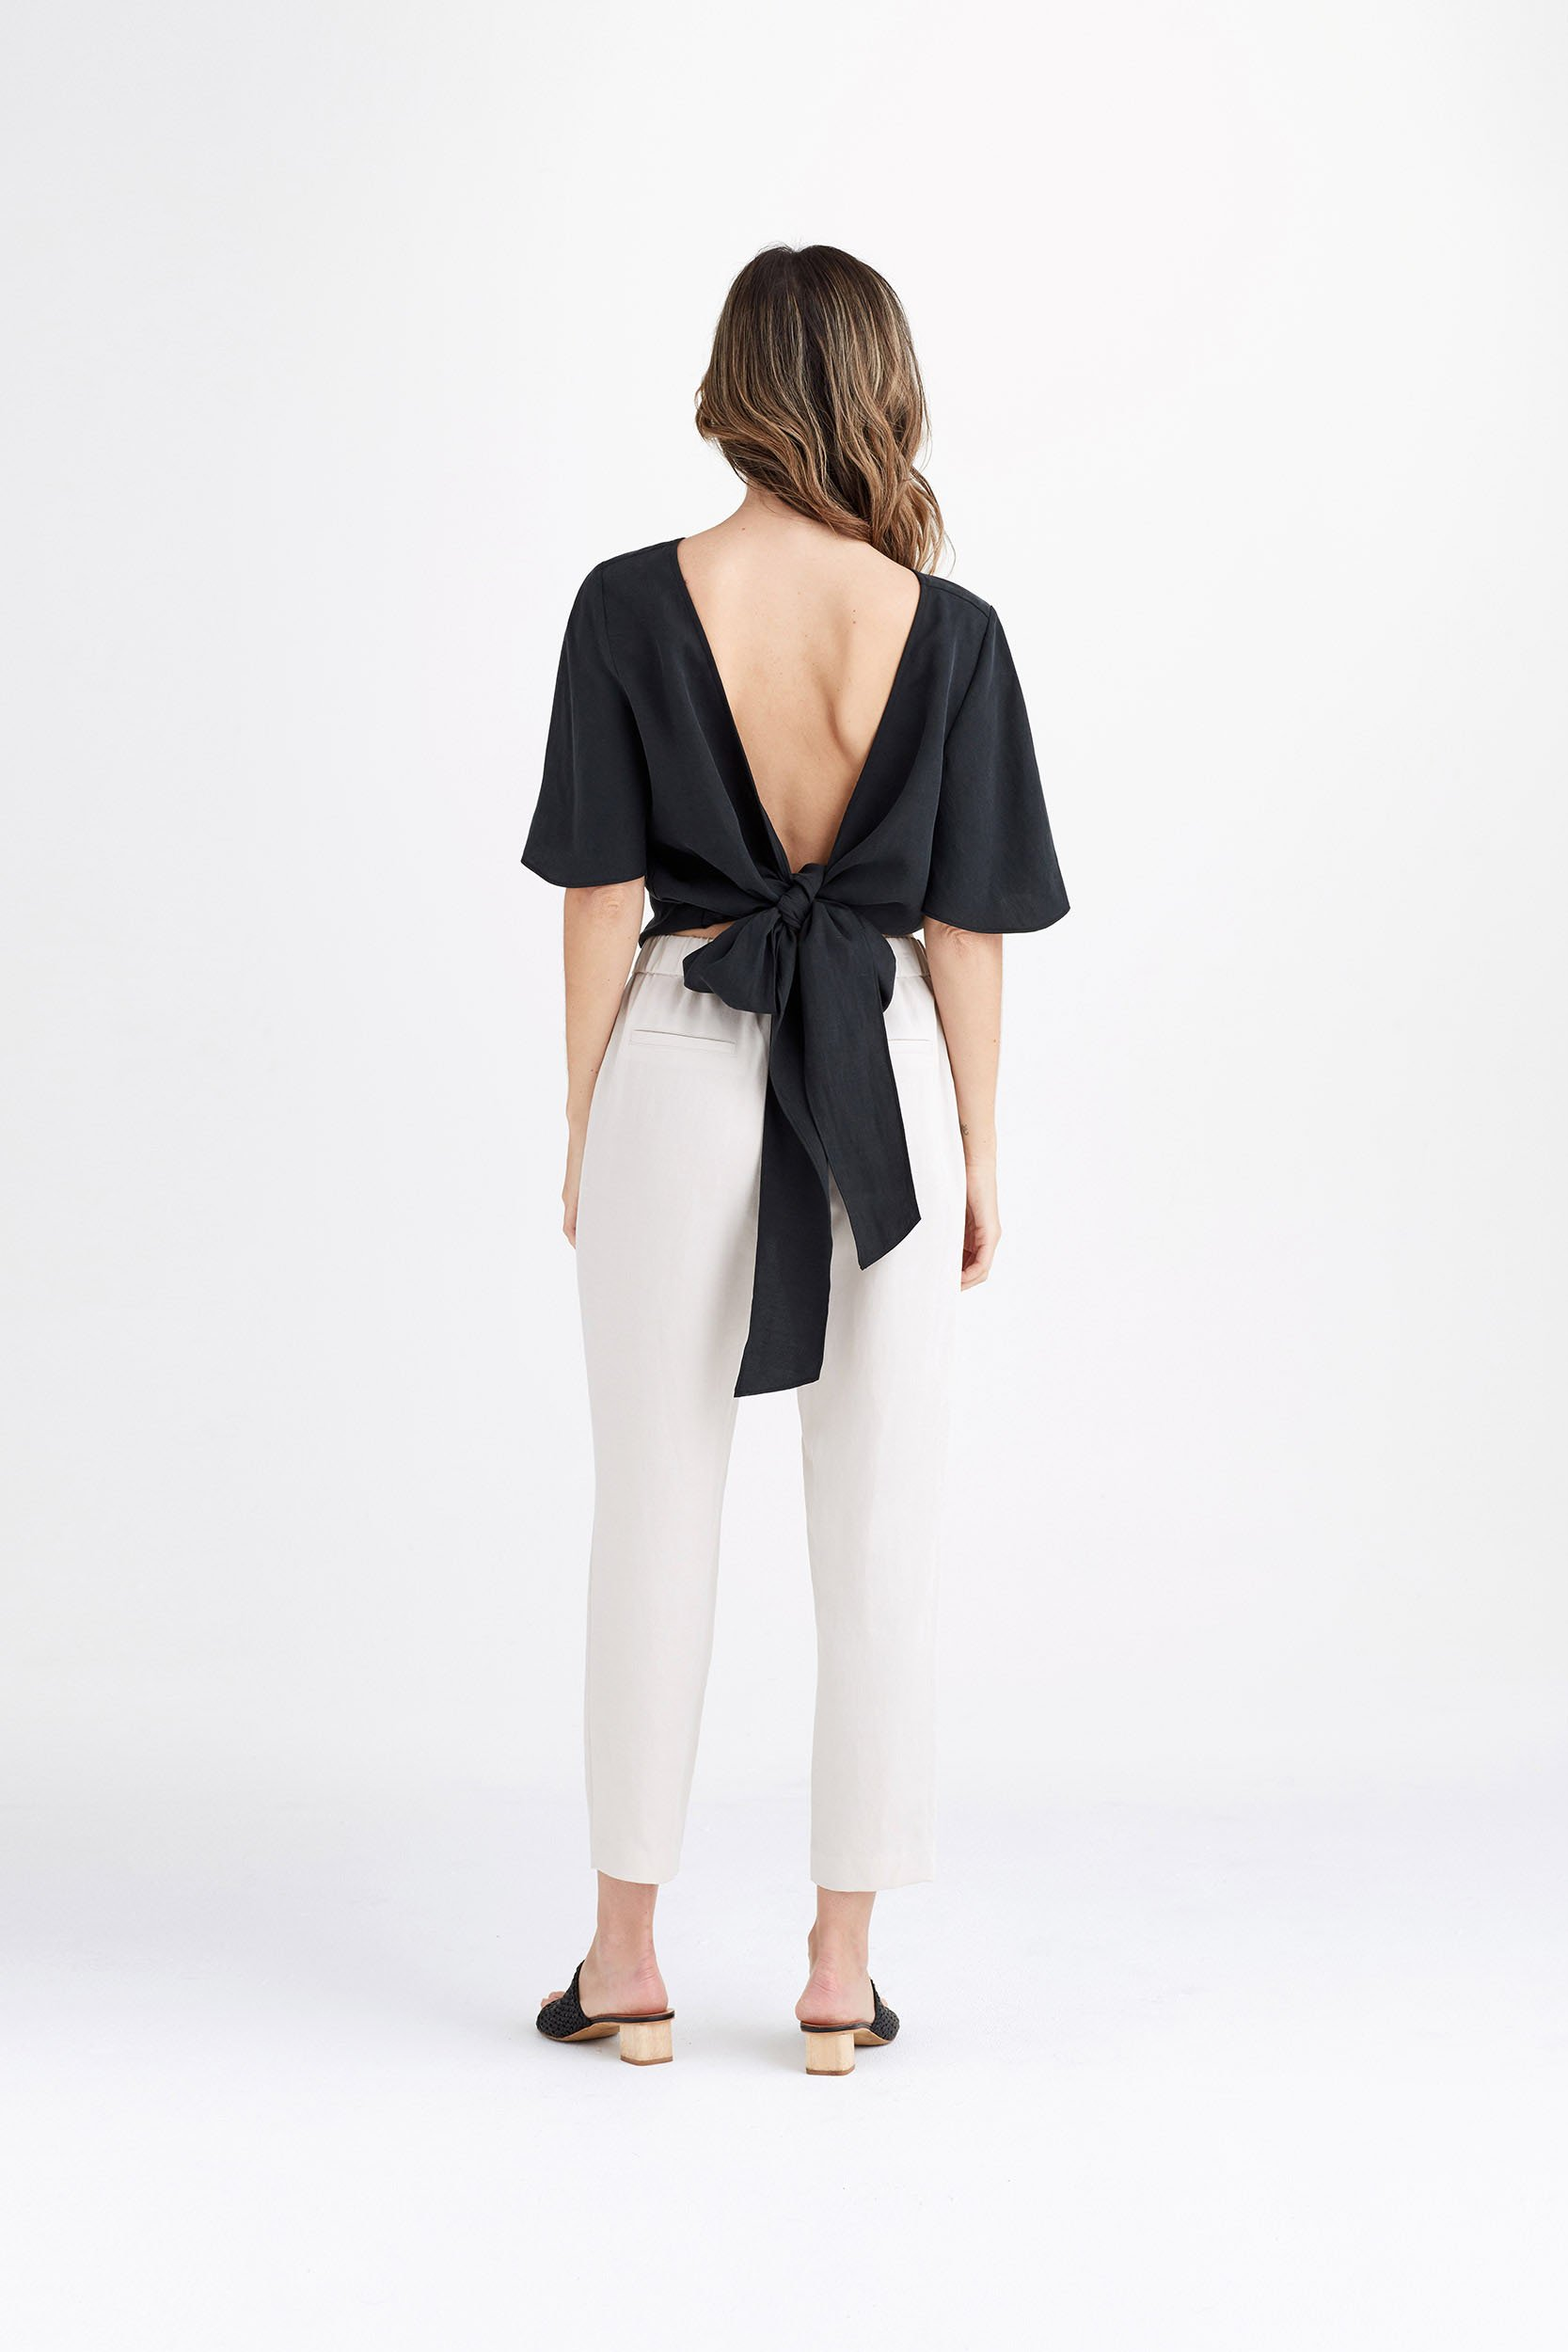 The Wrap Top 2.0 - $89